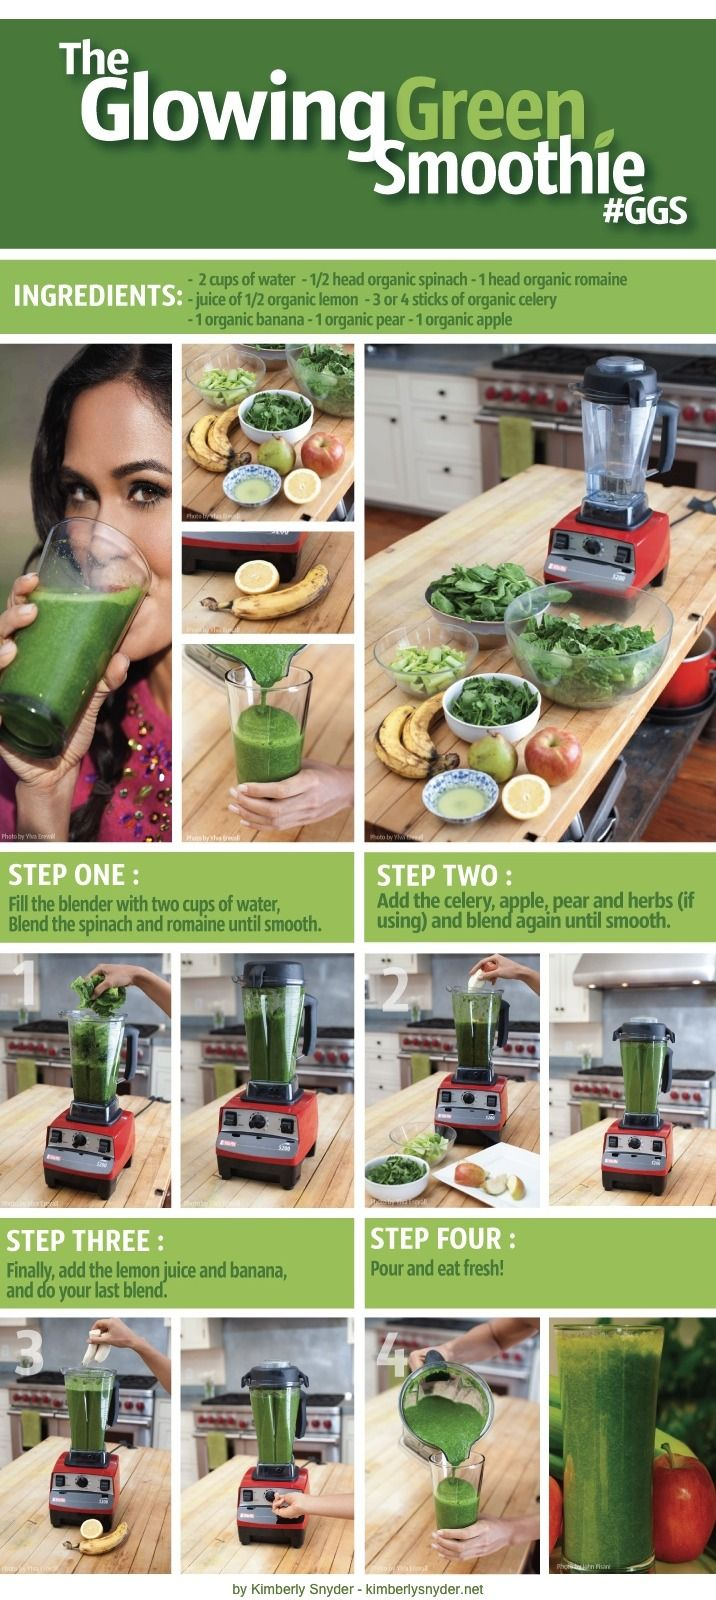 Too many holiday treats? Green smoothie to the rescue!